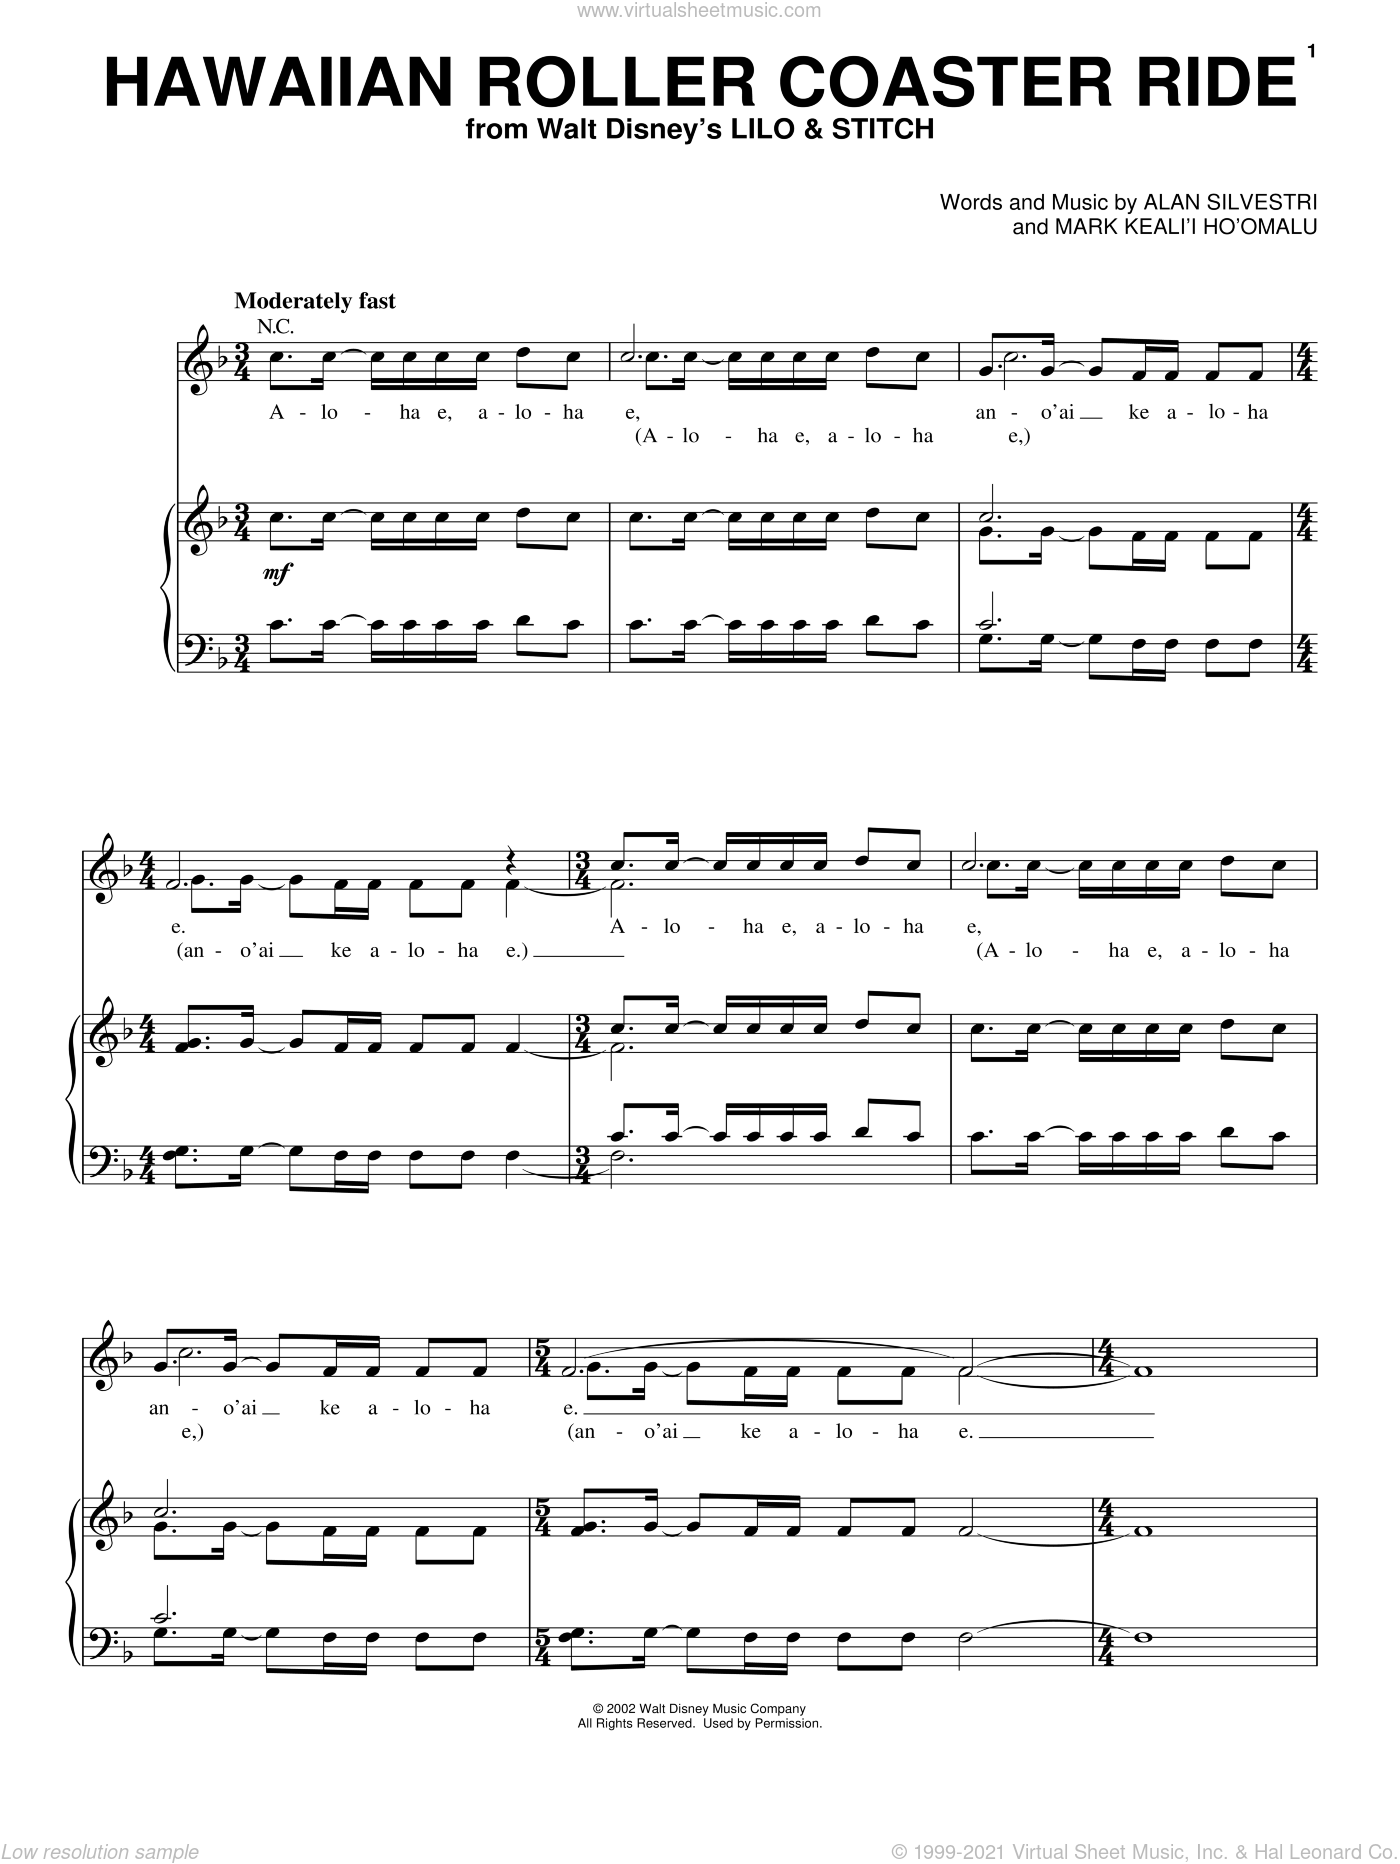 Hawaiian Roller Coaster Ride sheet music for voice, piano or guitar by Mark Keali'i Ho'omalu and Alan Silvestri. Score Image Preview.